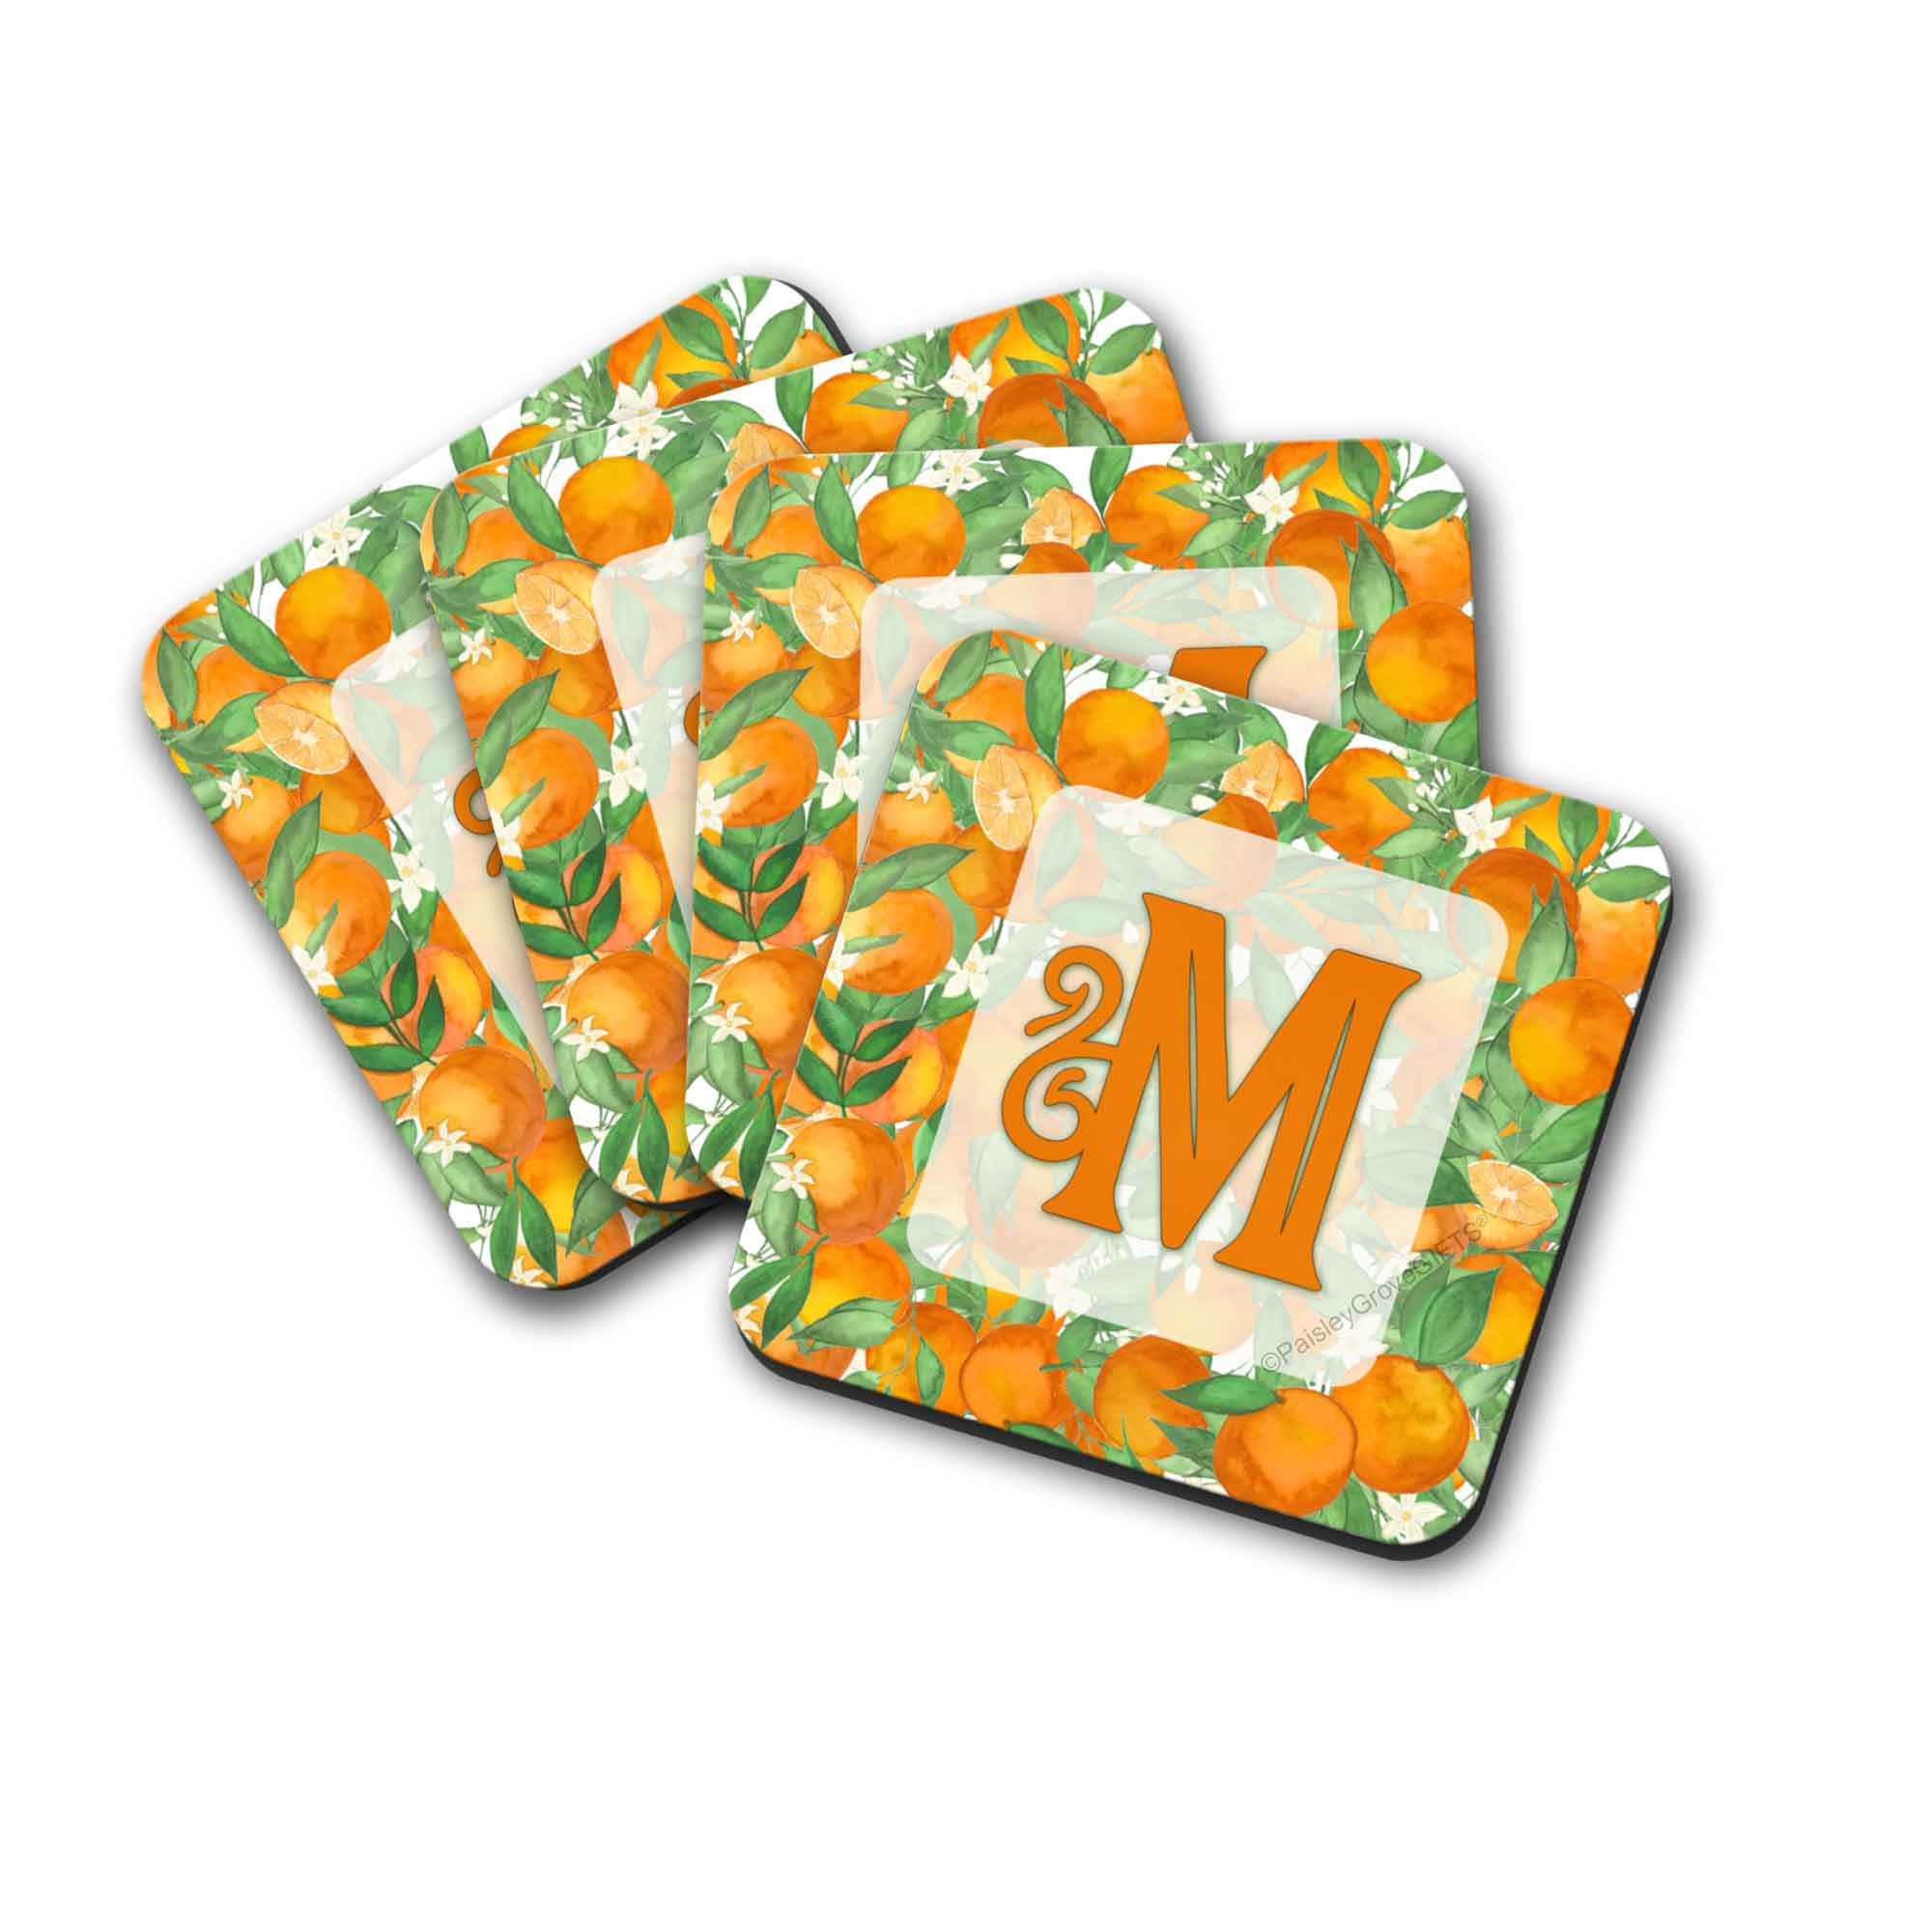 Copyright PaisleyGroveGIFTS S711a Personalized Drink Coasters with Oranges